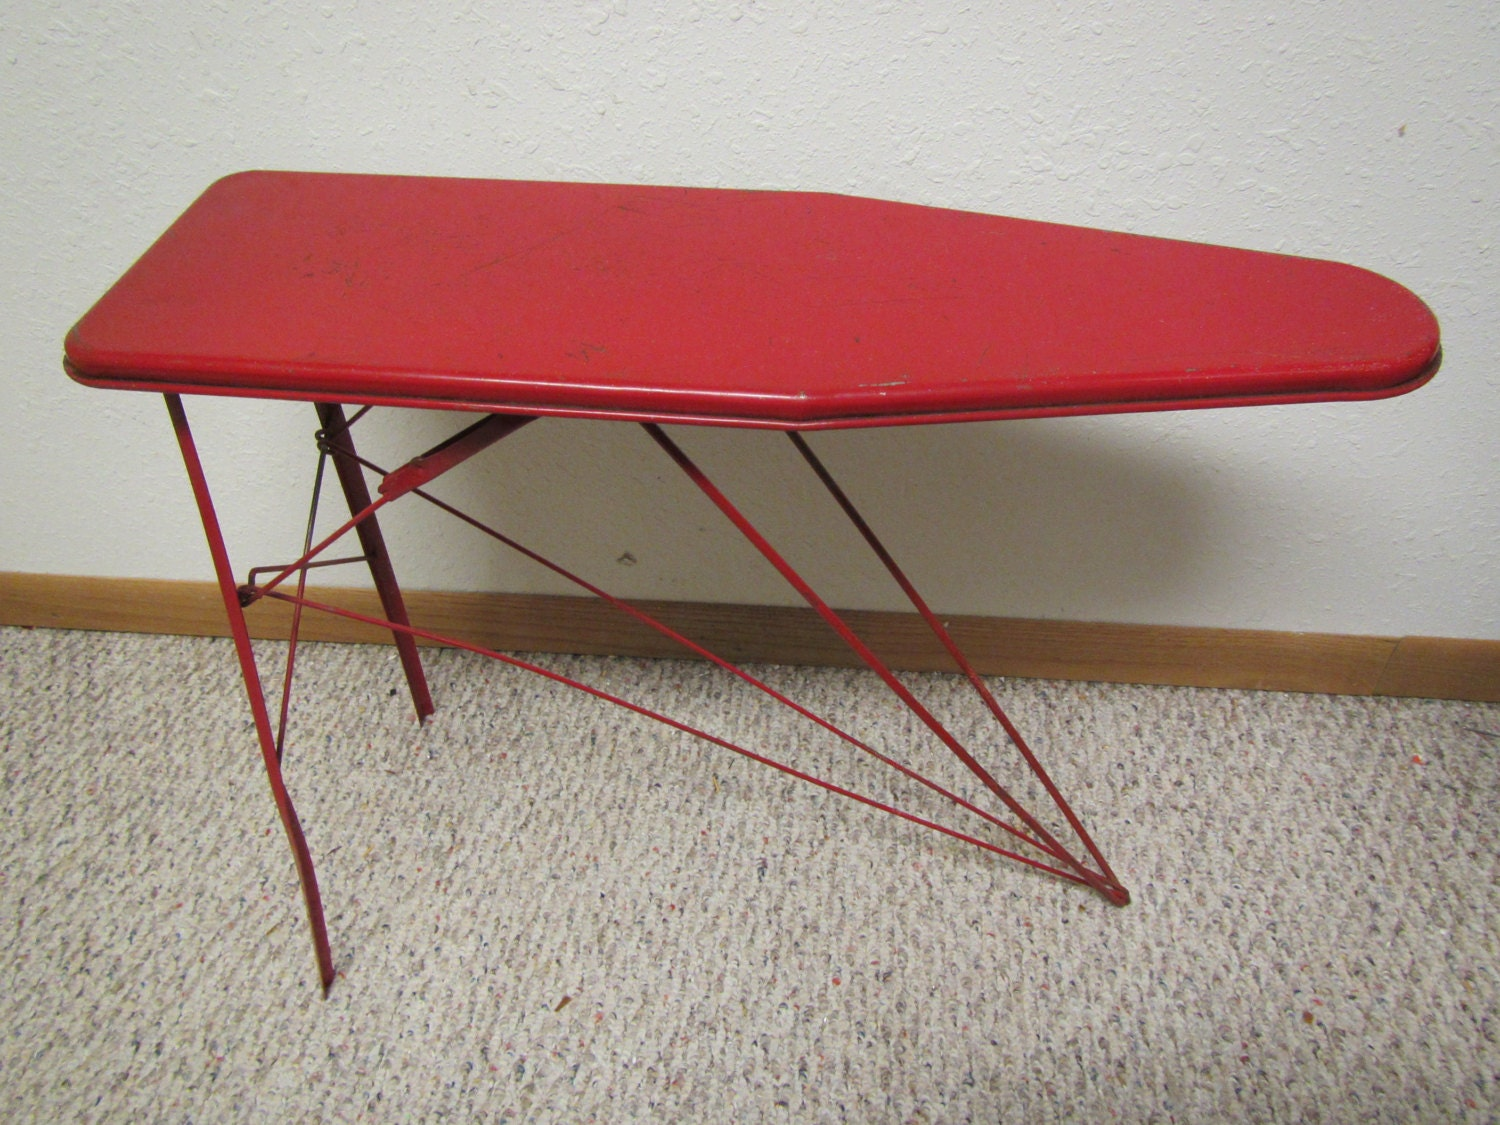 Ironing board furniture Diy 50 Etsy Childs Red Metal Ironing Board Folding Ironing Board Kids Etsy